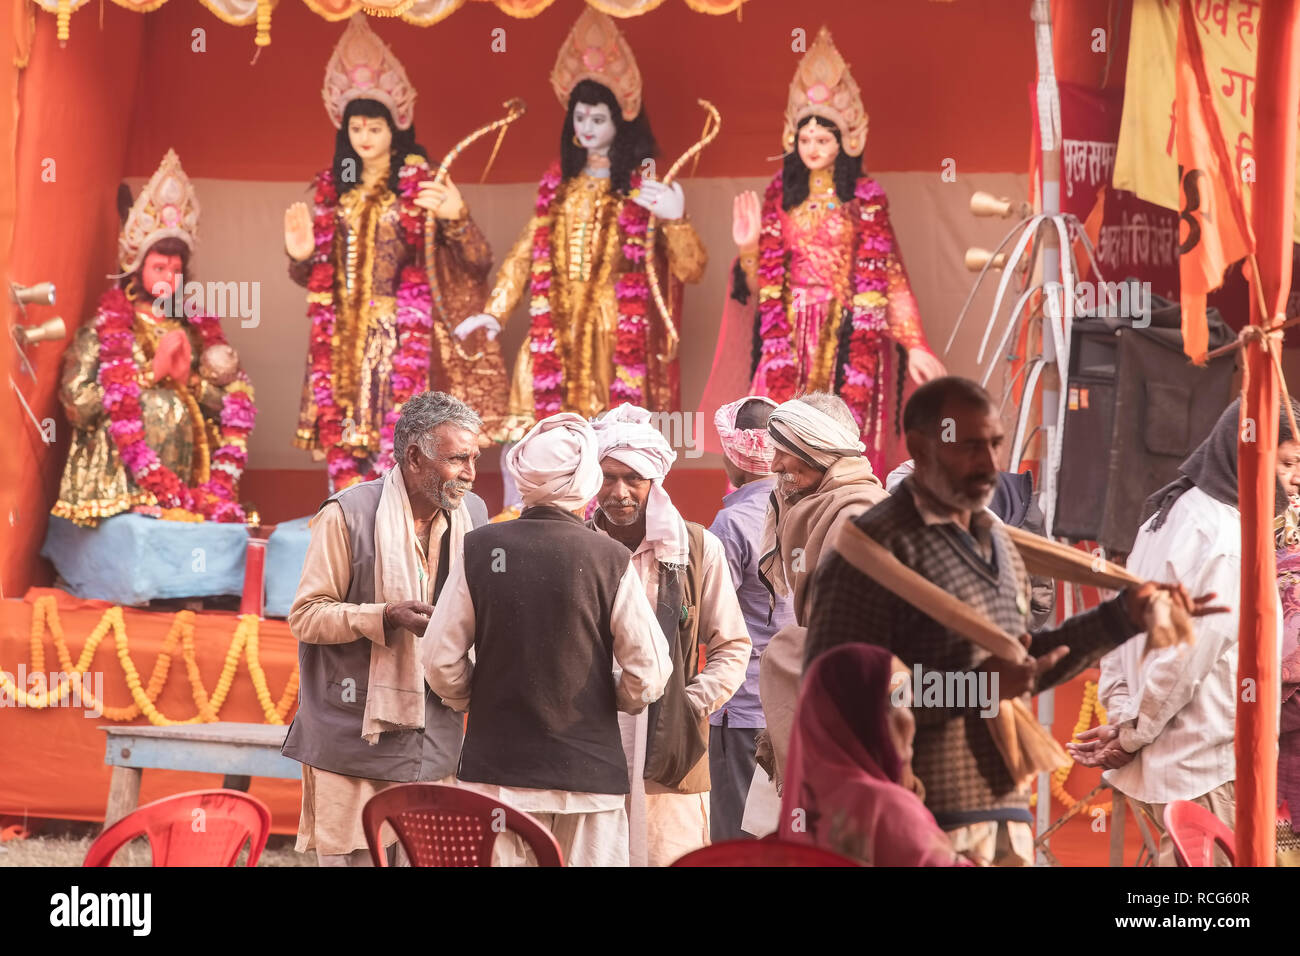 Gangasagar,Transit Camp,Kolkata,God,Lord Rama,Luman,Hanuman,Sita,looking, at visitors,from,Ajoyadha,U.P,who ,merrily,chatting,Kolkata,India. - Stock Image